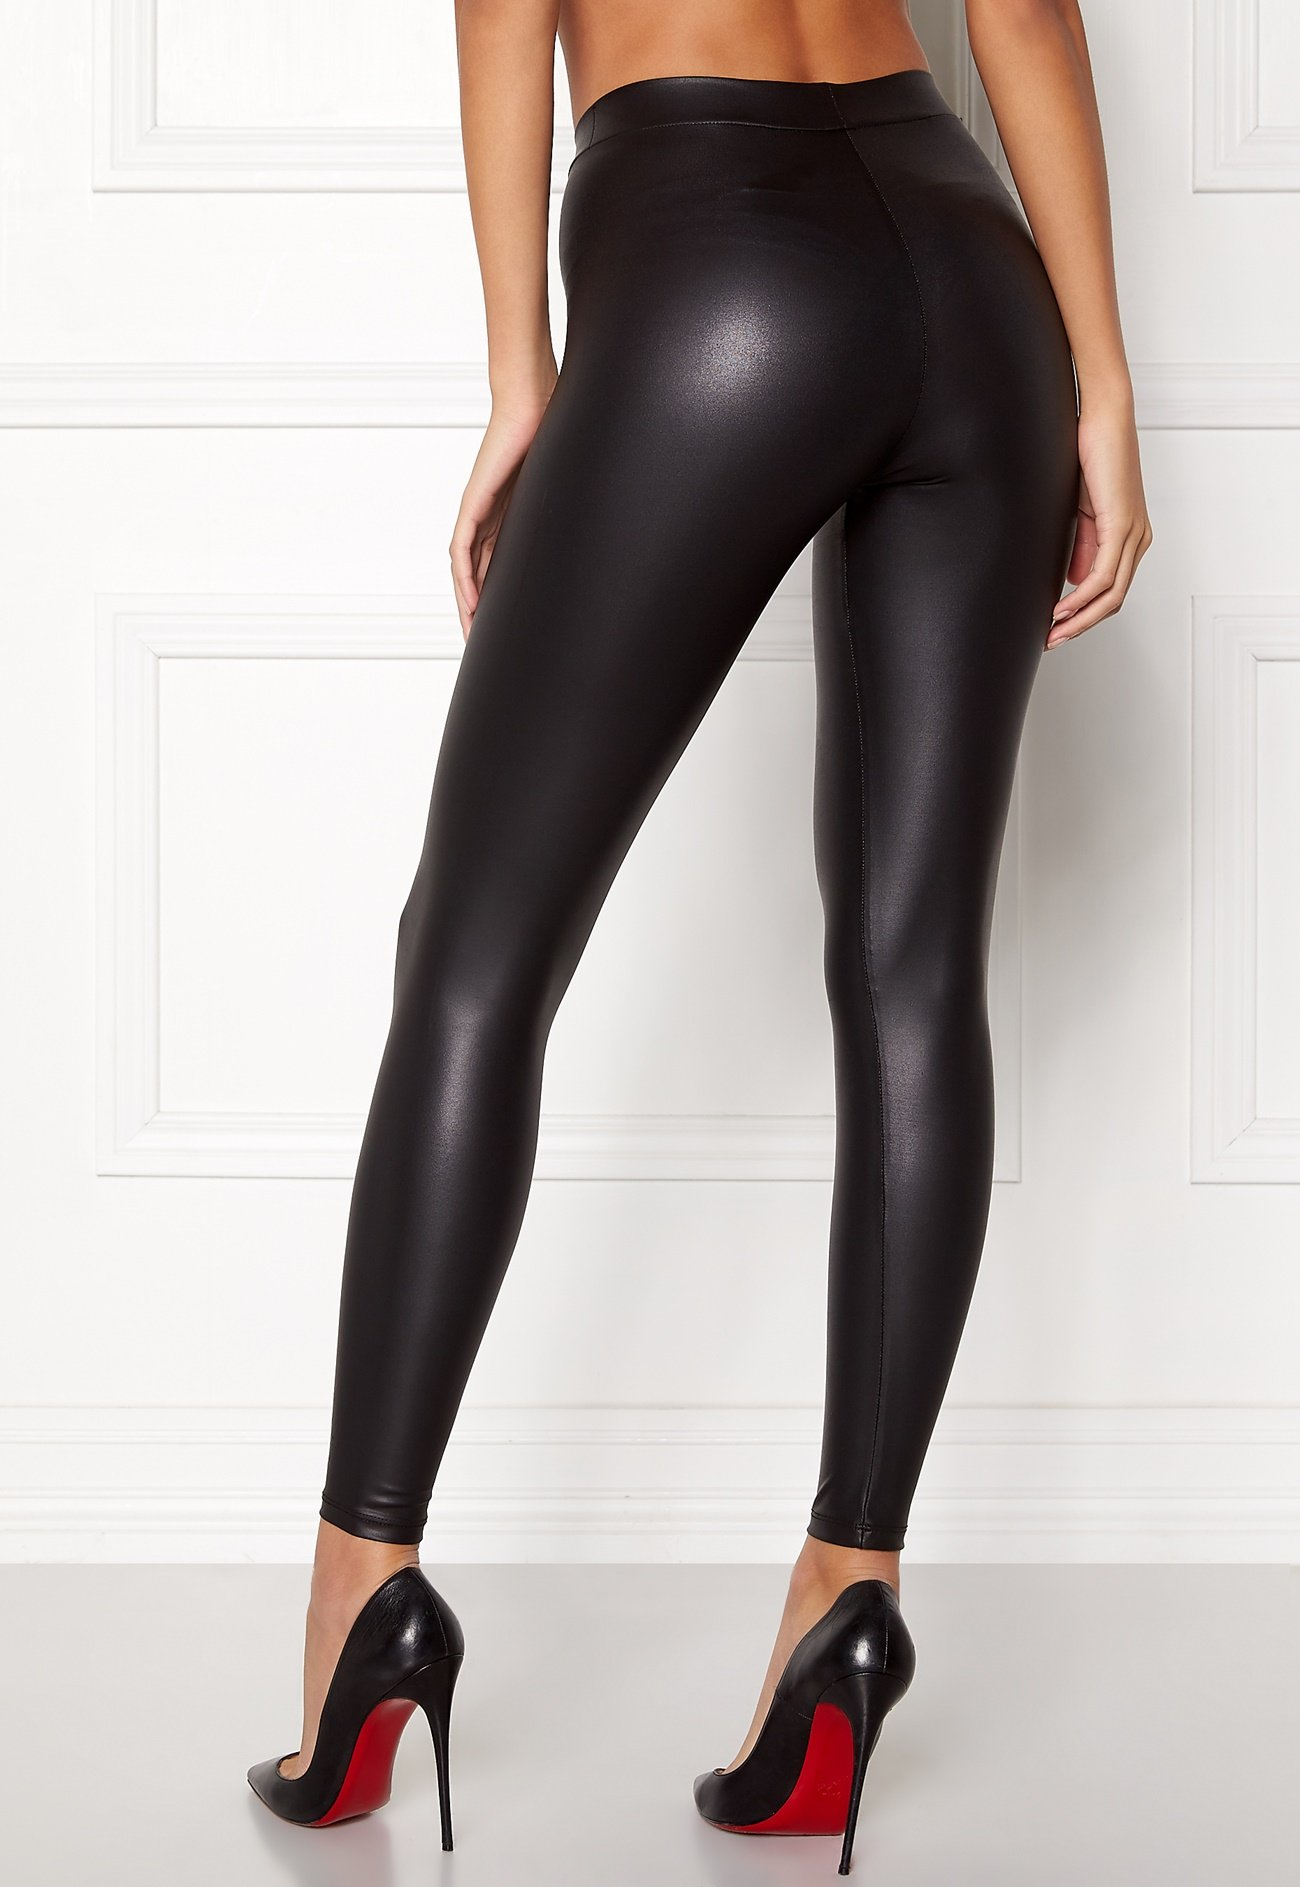 Find great deals on eBay for womens shiny black leggings. Shop with confidence.